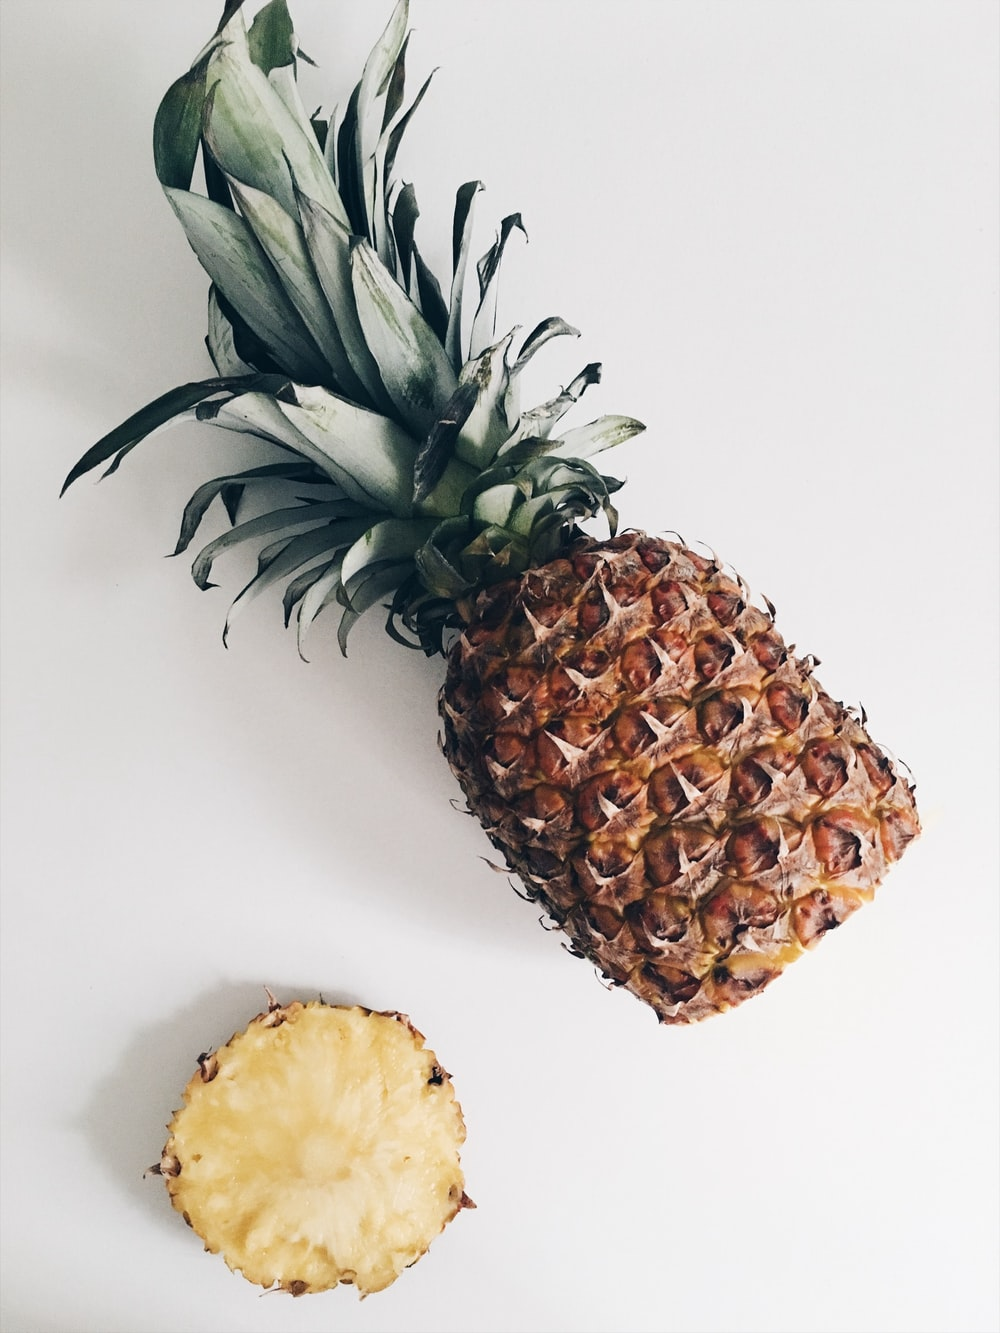 A pineapple lying on its side with its bottom sliced off.